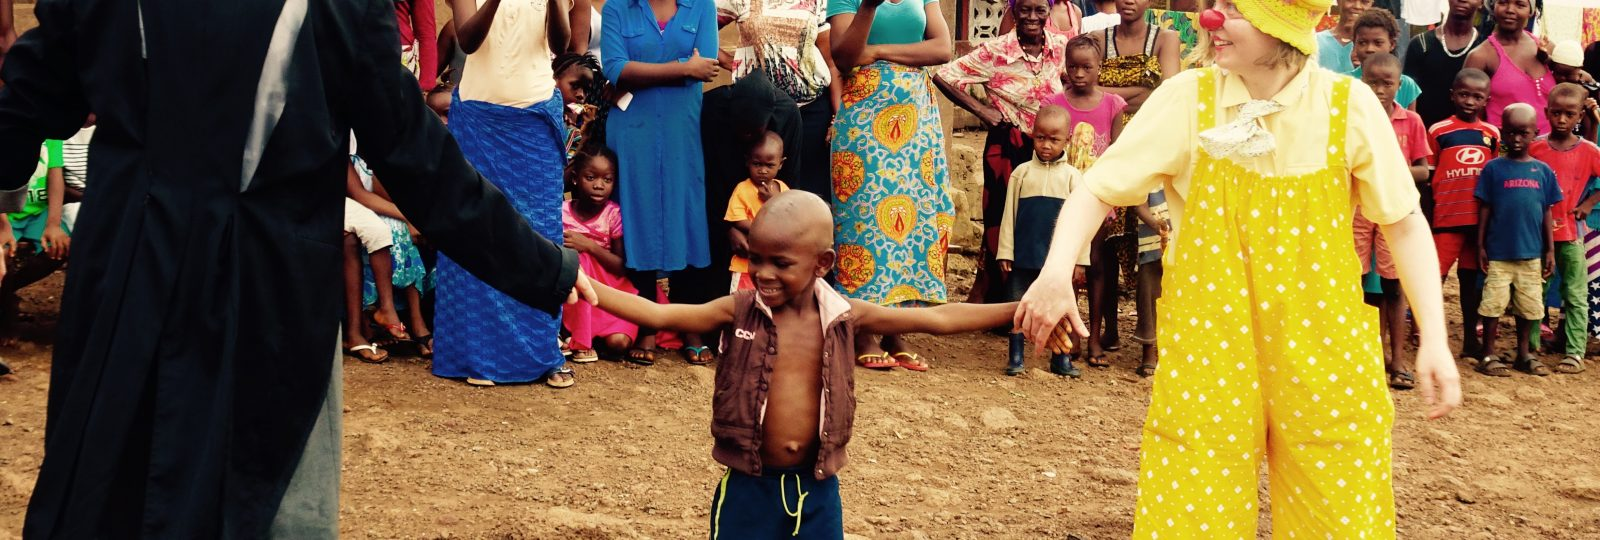 2 clowns and child in sierra leone